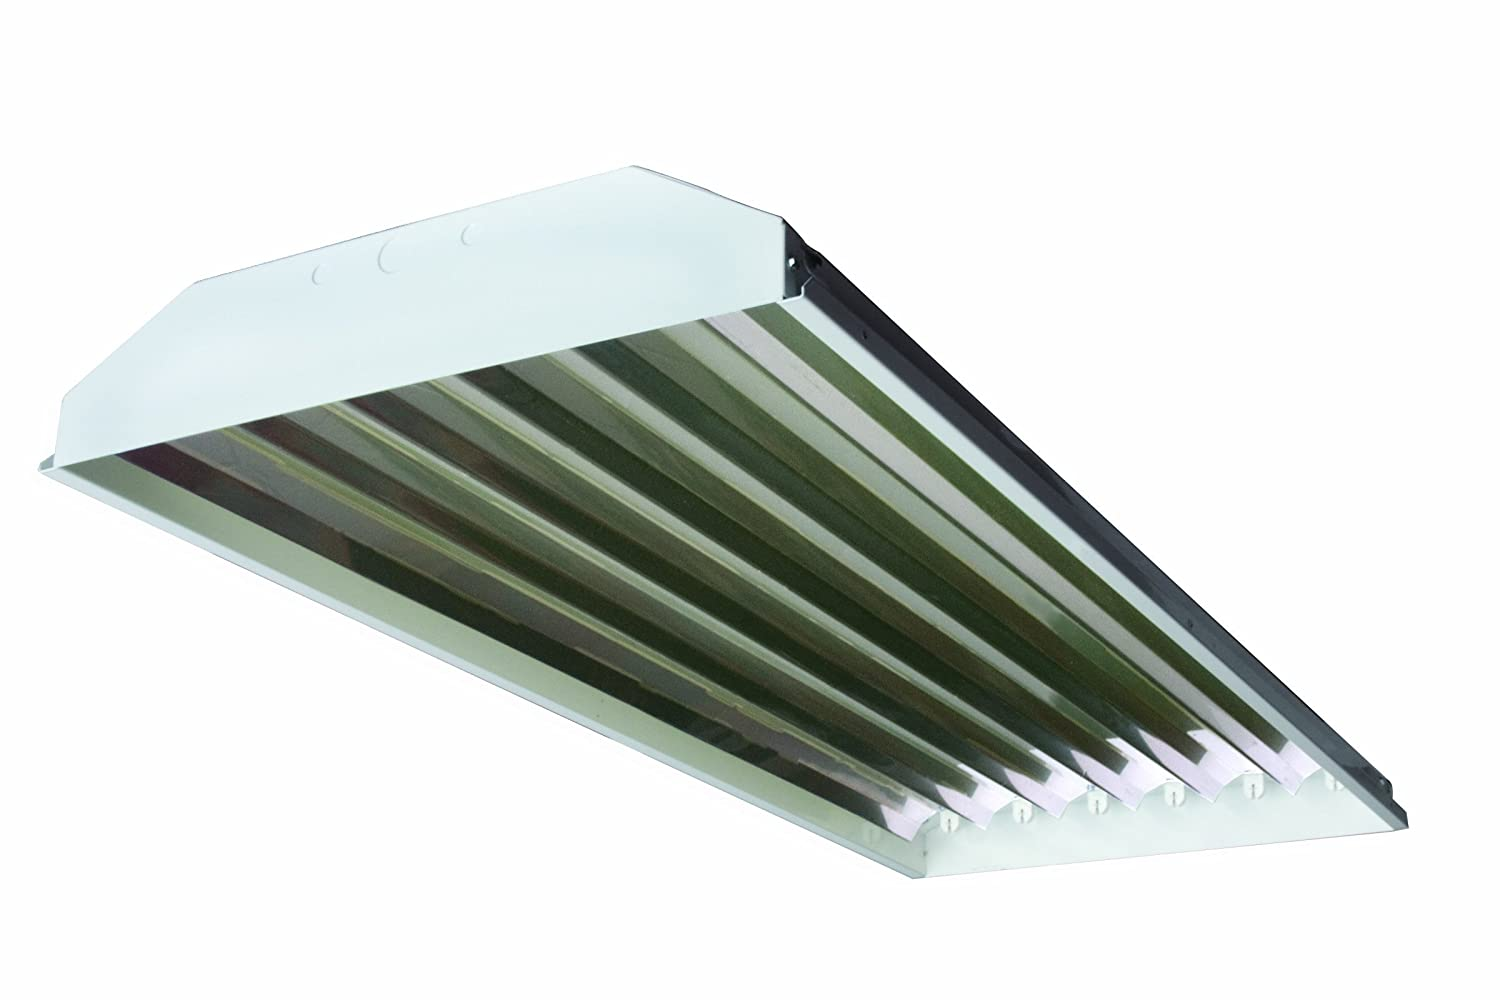 howard lighting hfa1e632ahemv000000i 6 lamp high bay fluorescent